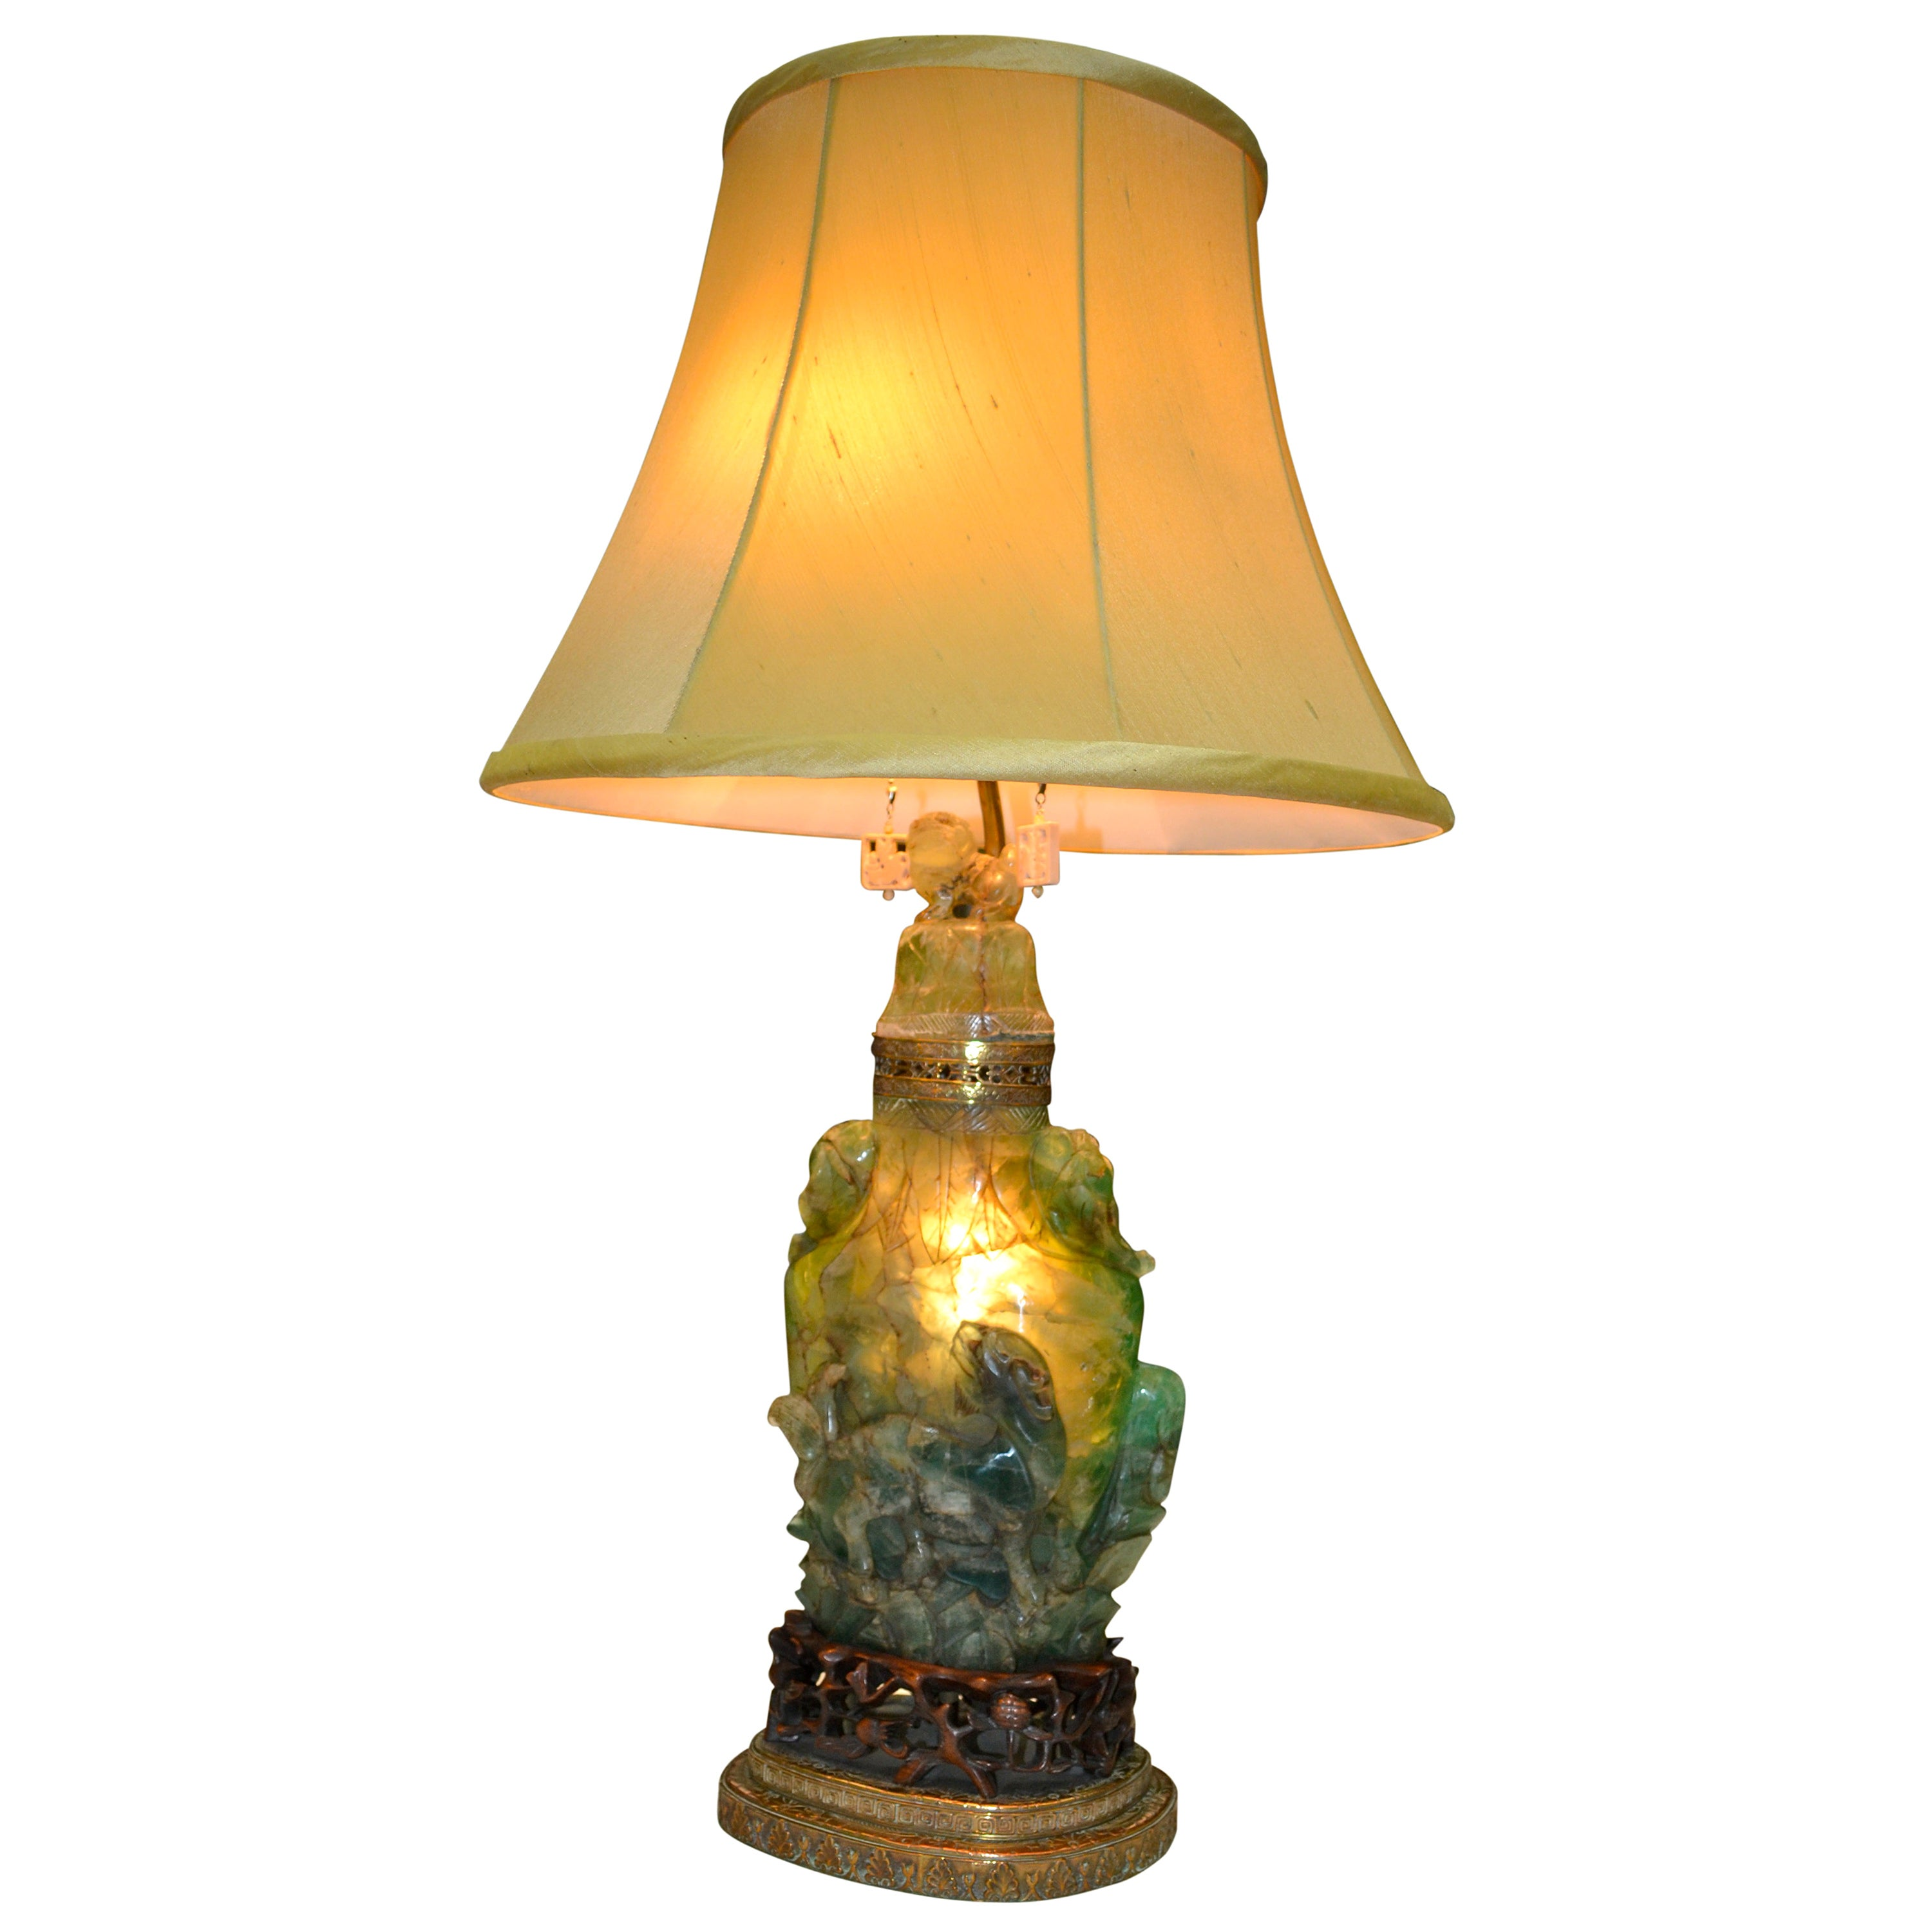 Early 20th Century Chinese Carved Green Jadeite Quartz Lamp